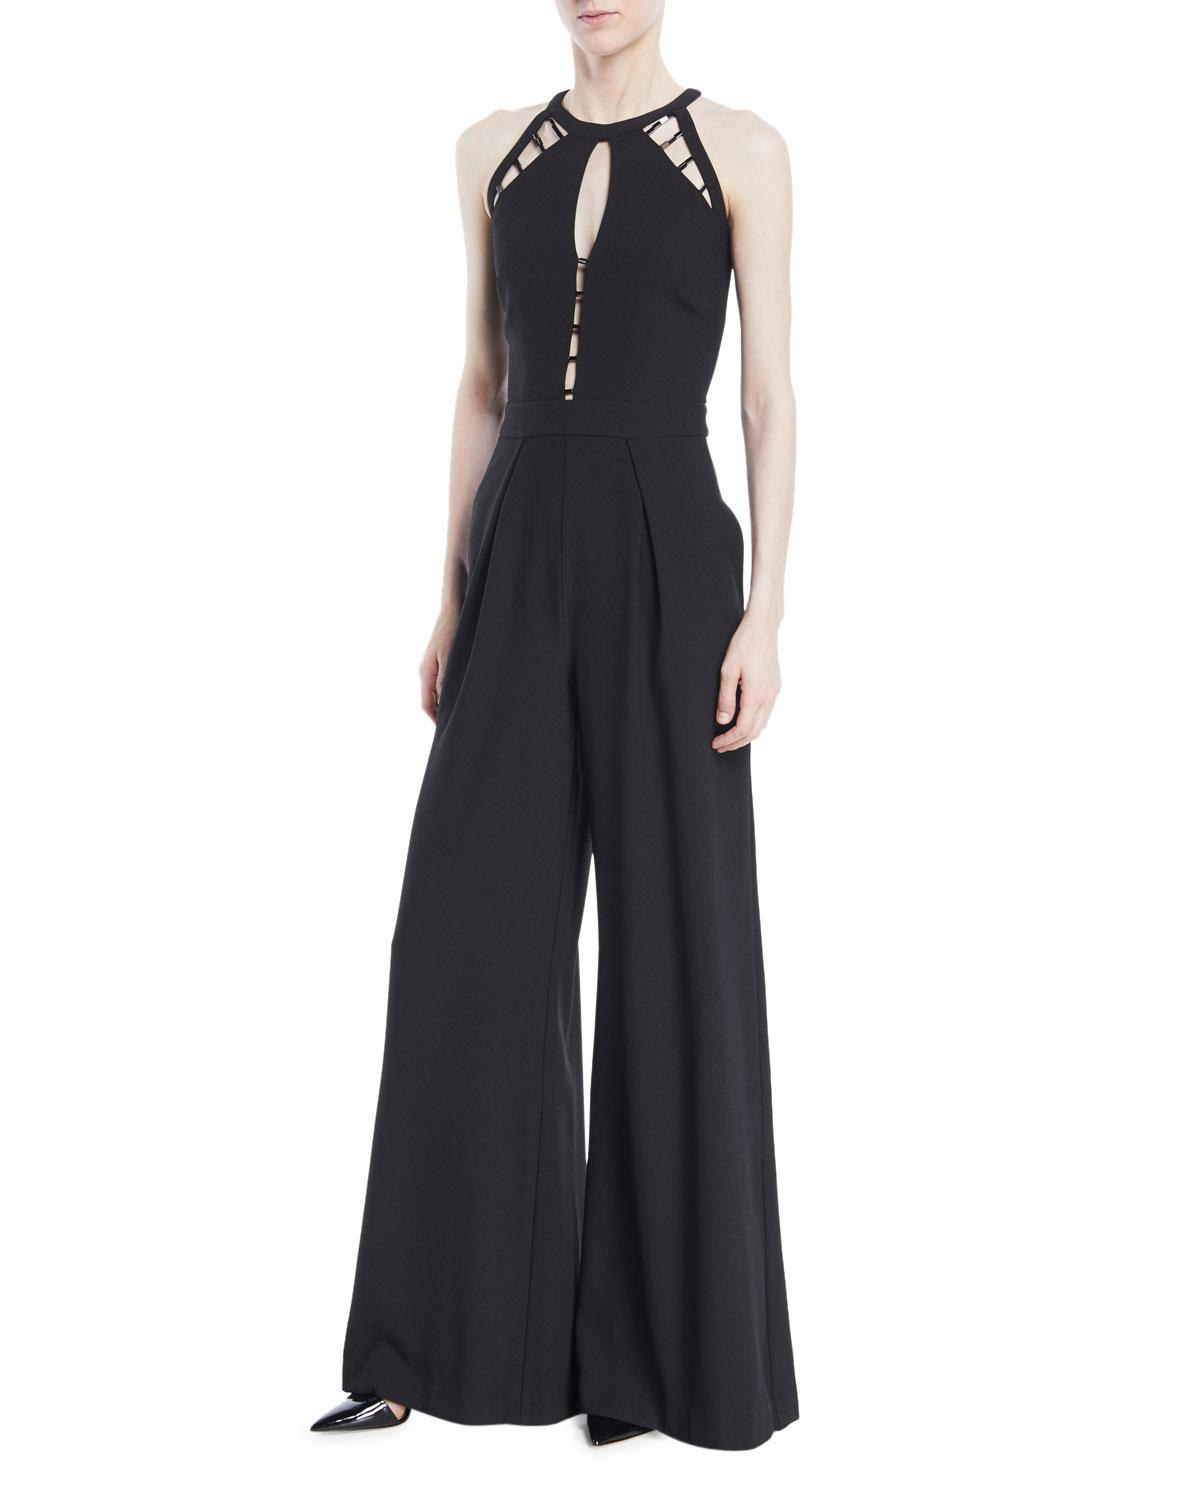 Zac Posen Sasha Openwork Wide-leg Jumpsuit In Black